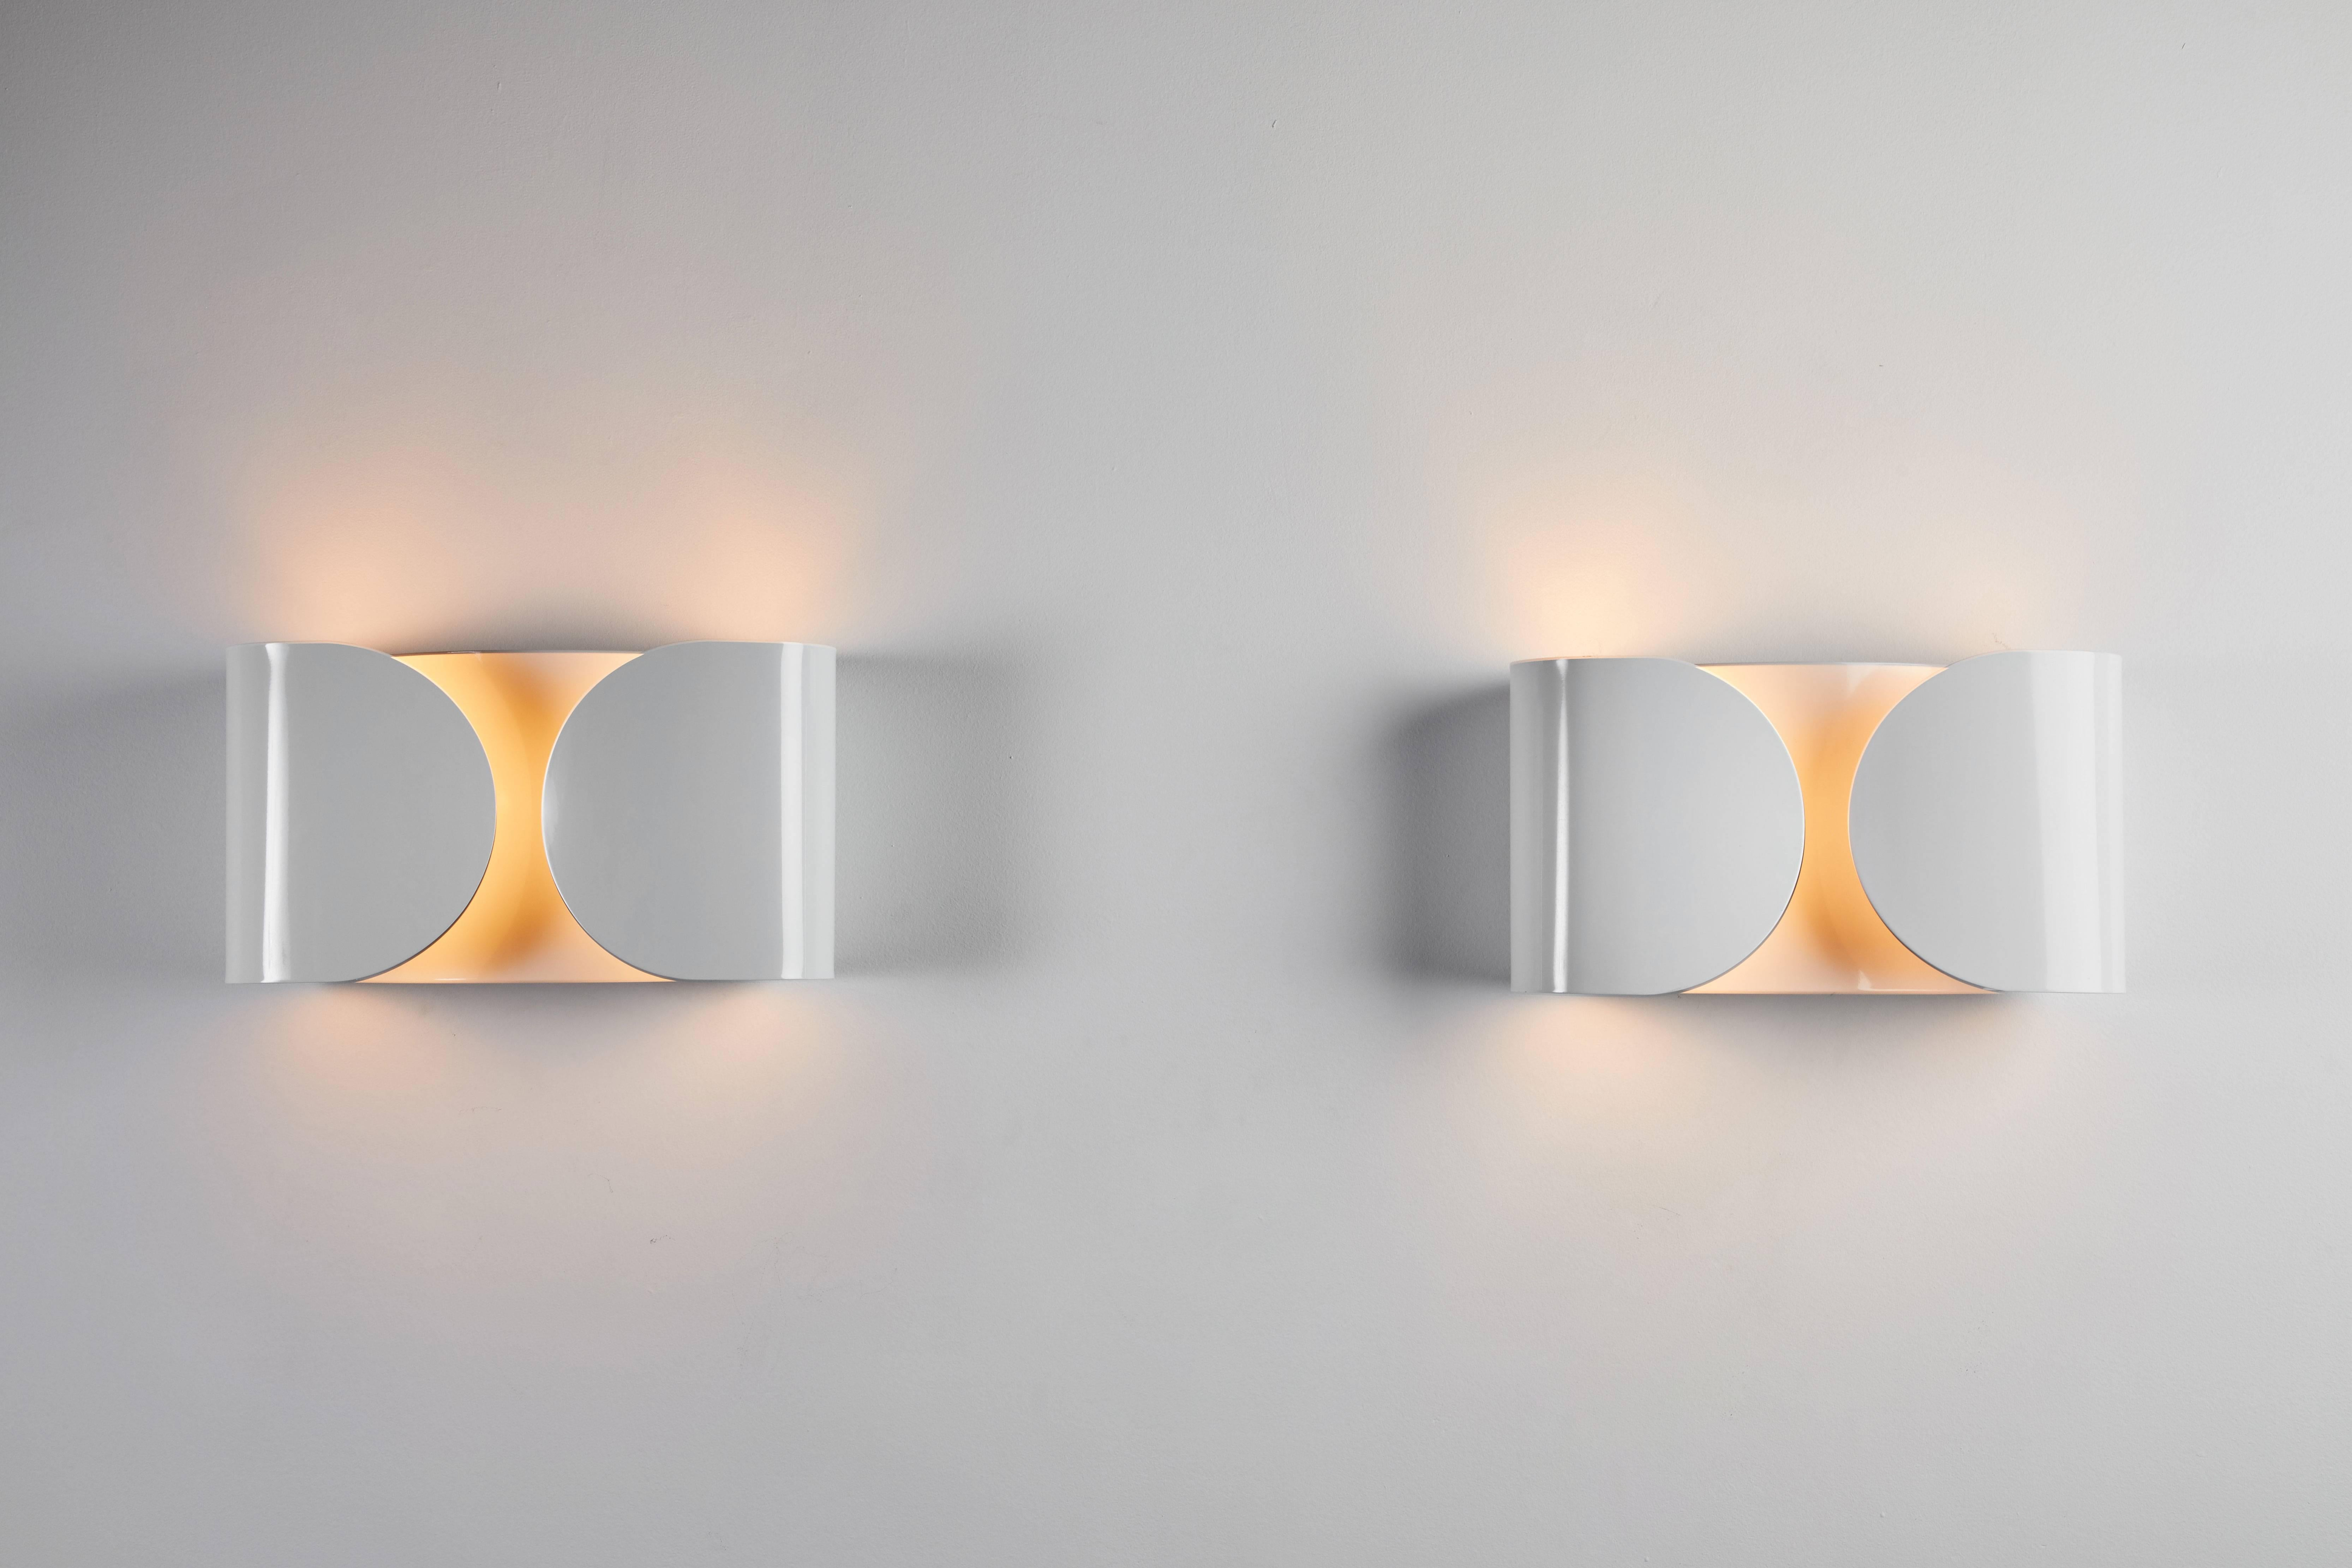 Foglio sconce by tobia scarpa for flos for sale at 1stdibs